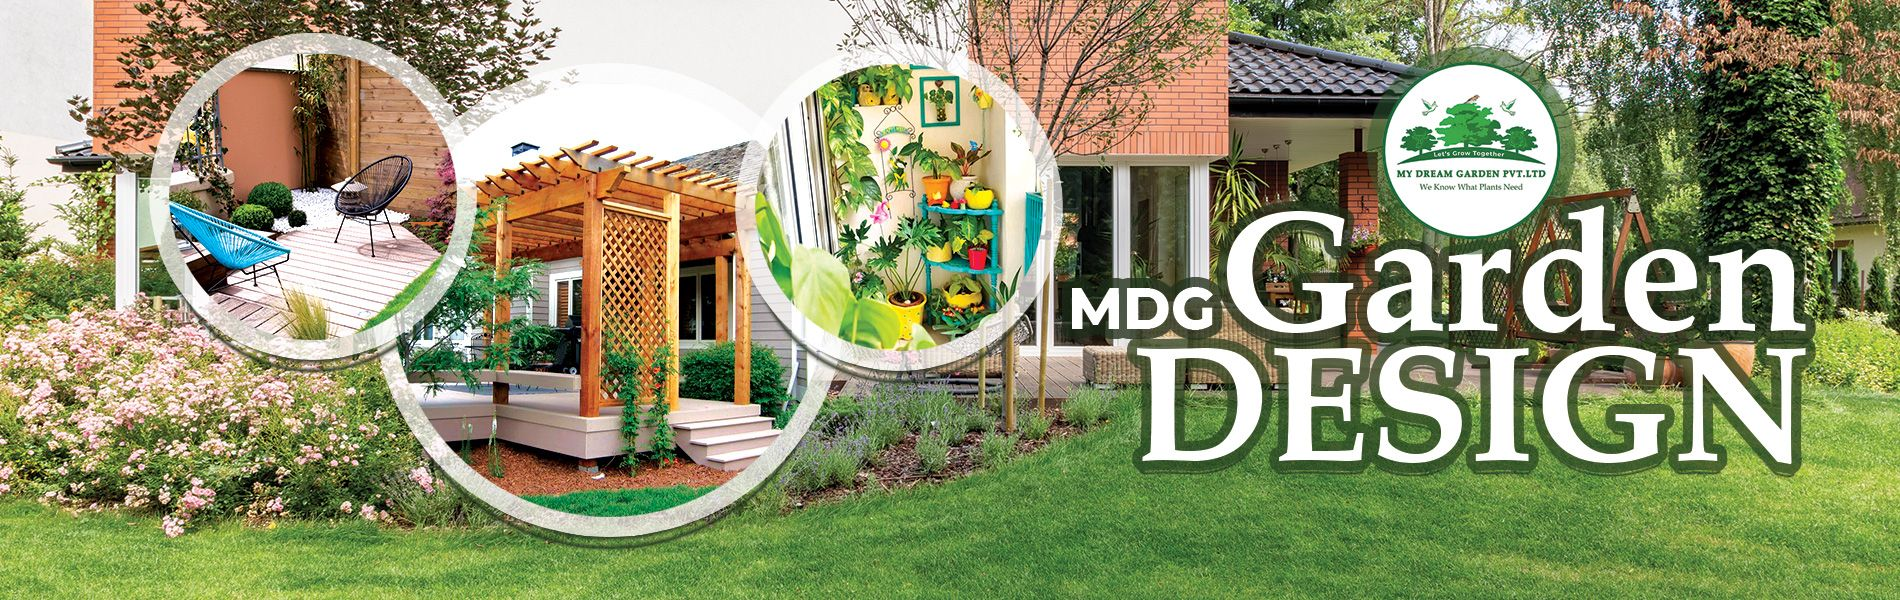 https://www.mydreamgarden.in/garden-design.html